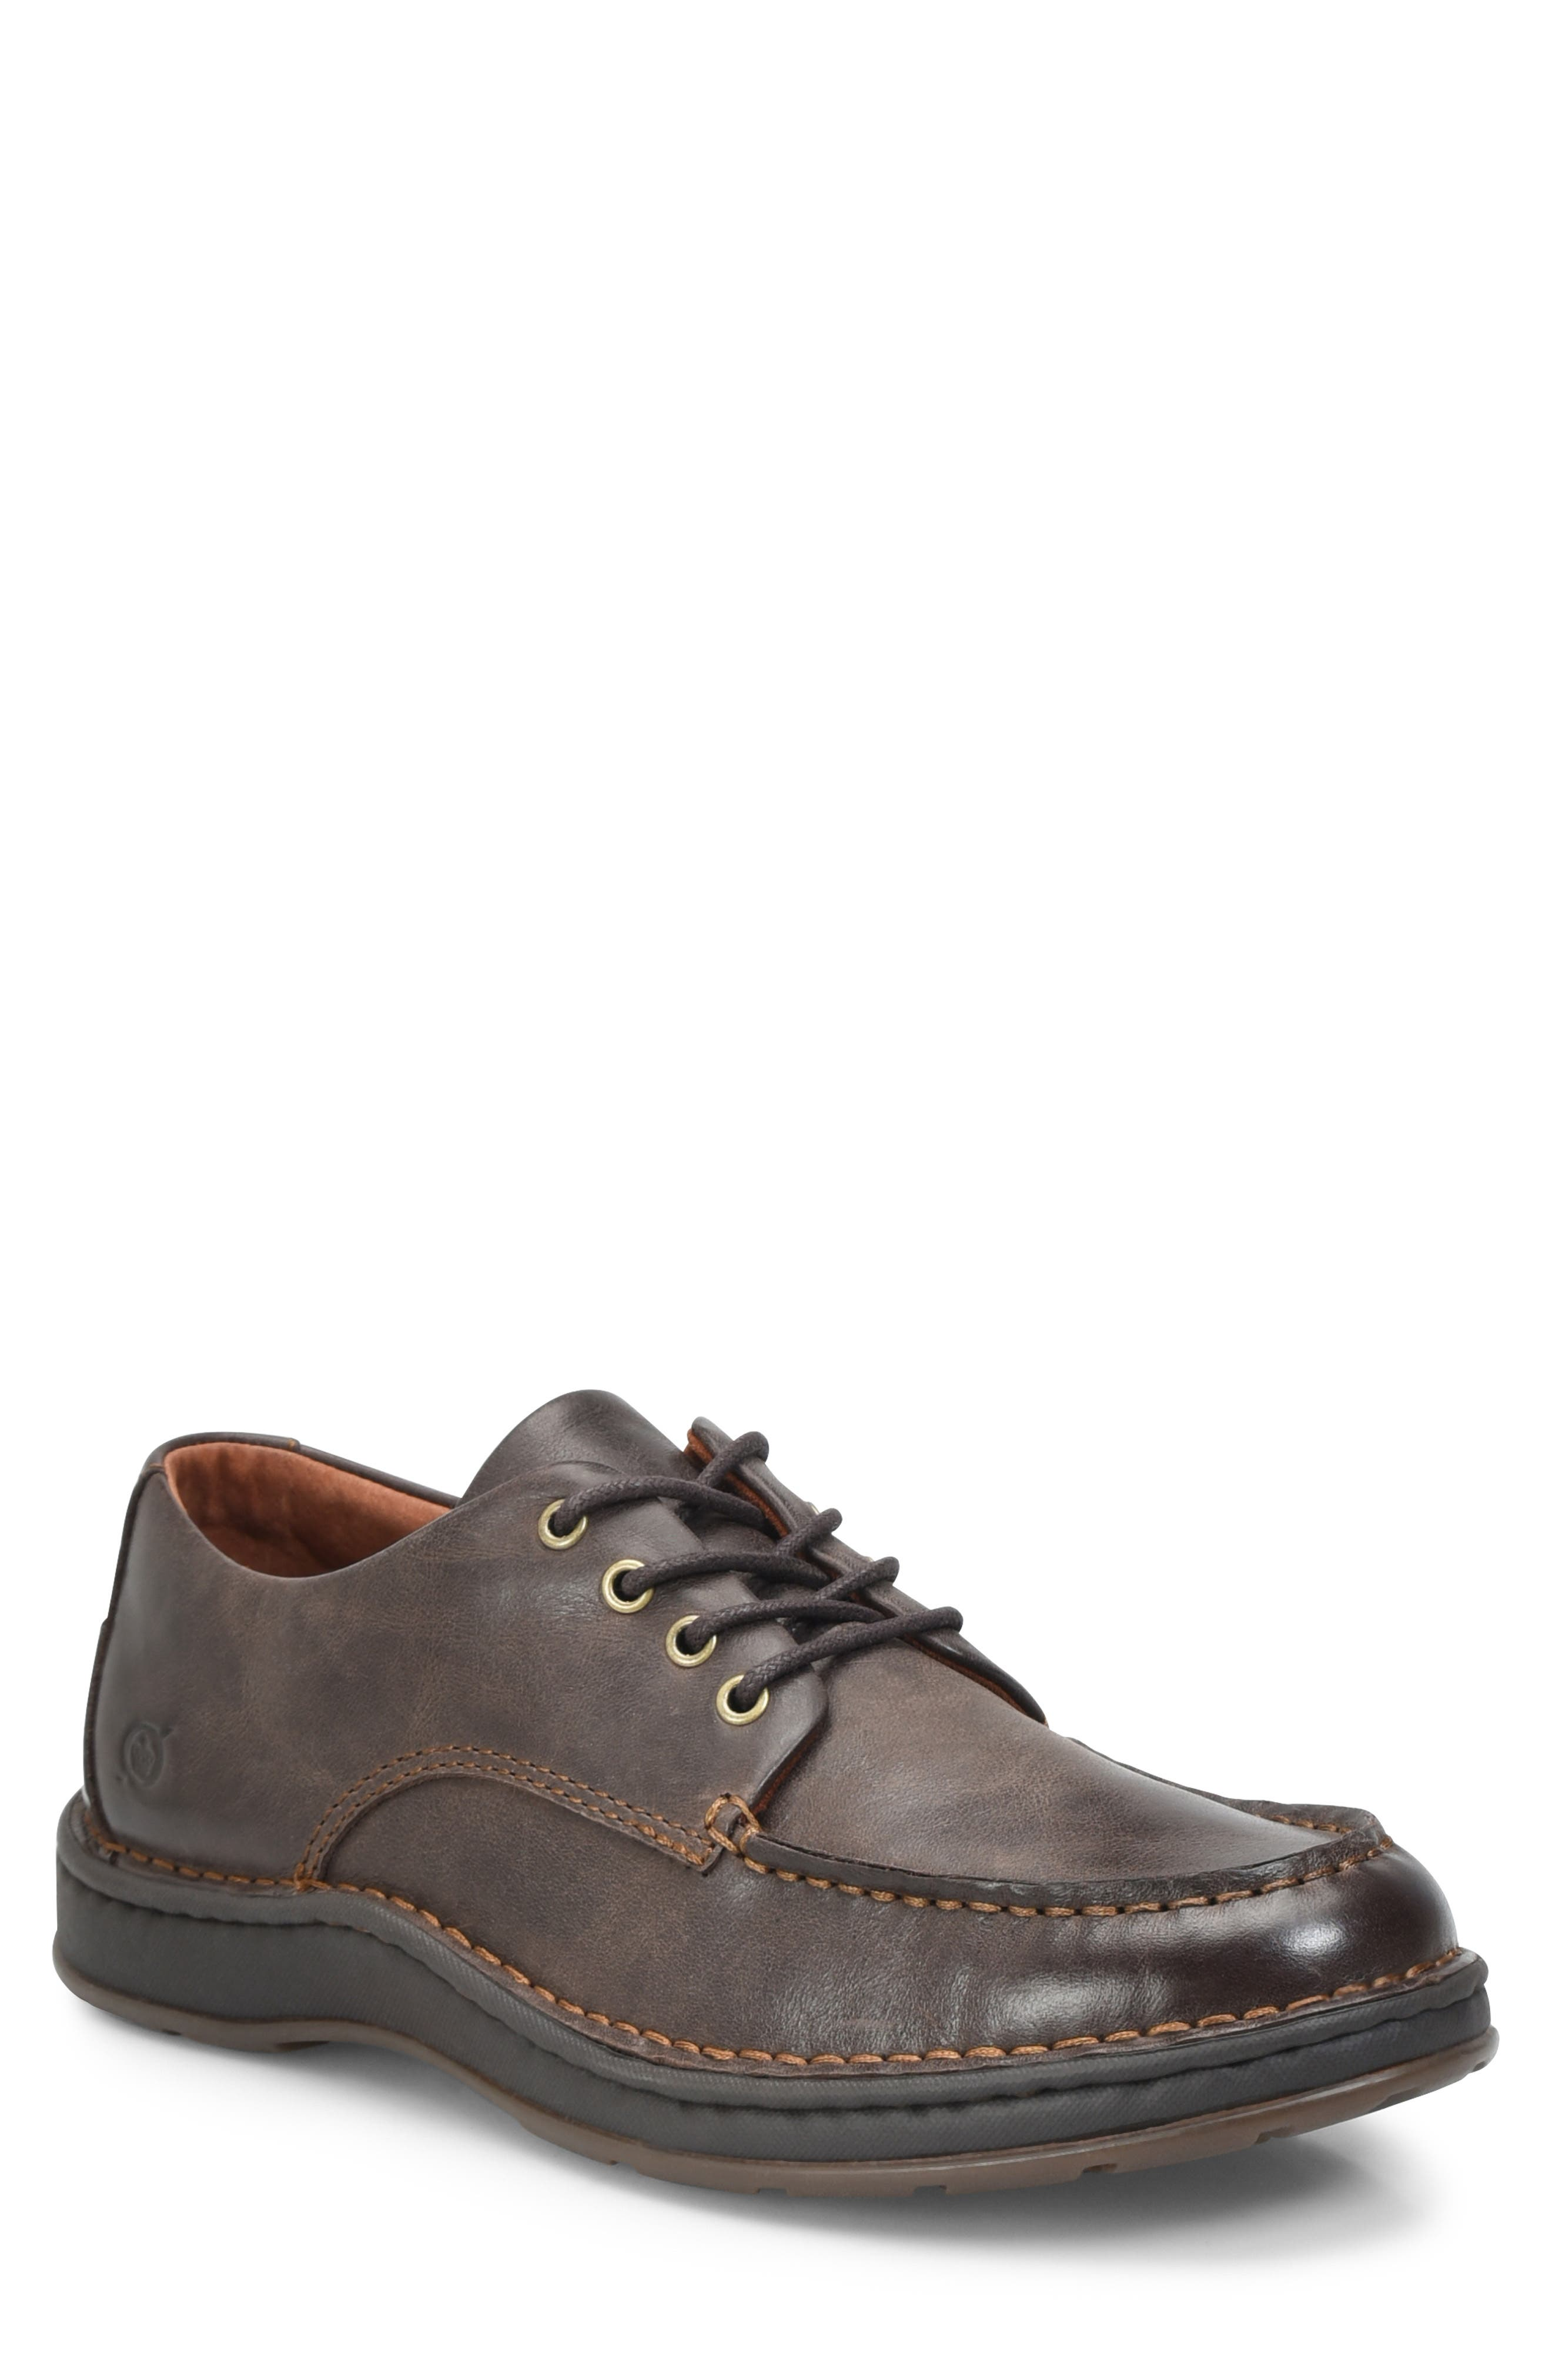 Leon Moc Toe Derby,                         Main,                         color, DARK BROWN LEATHER